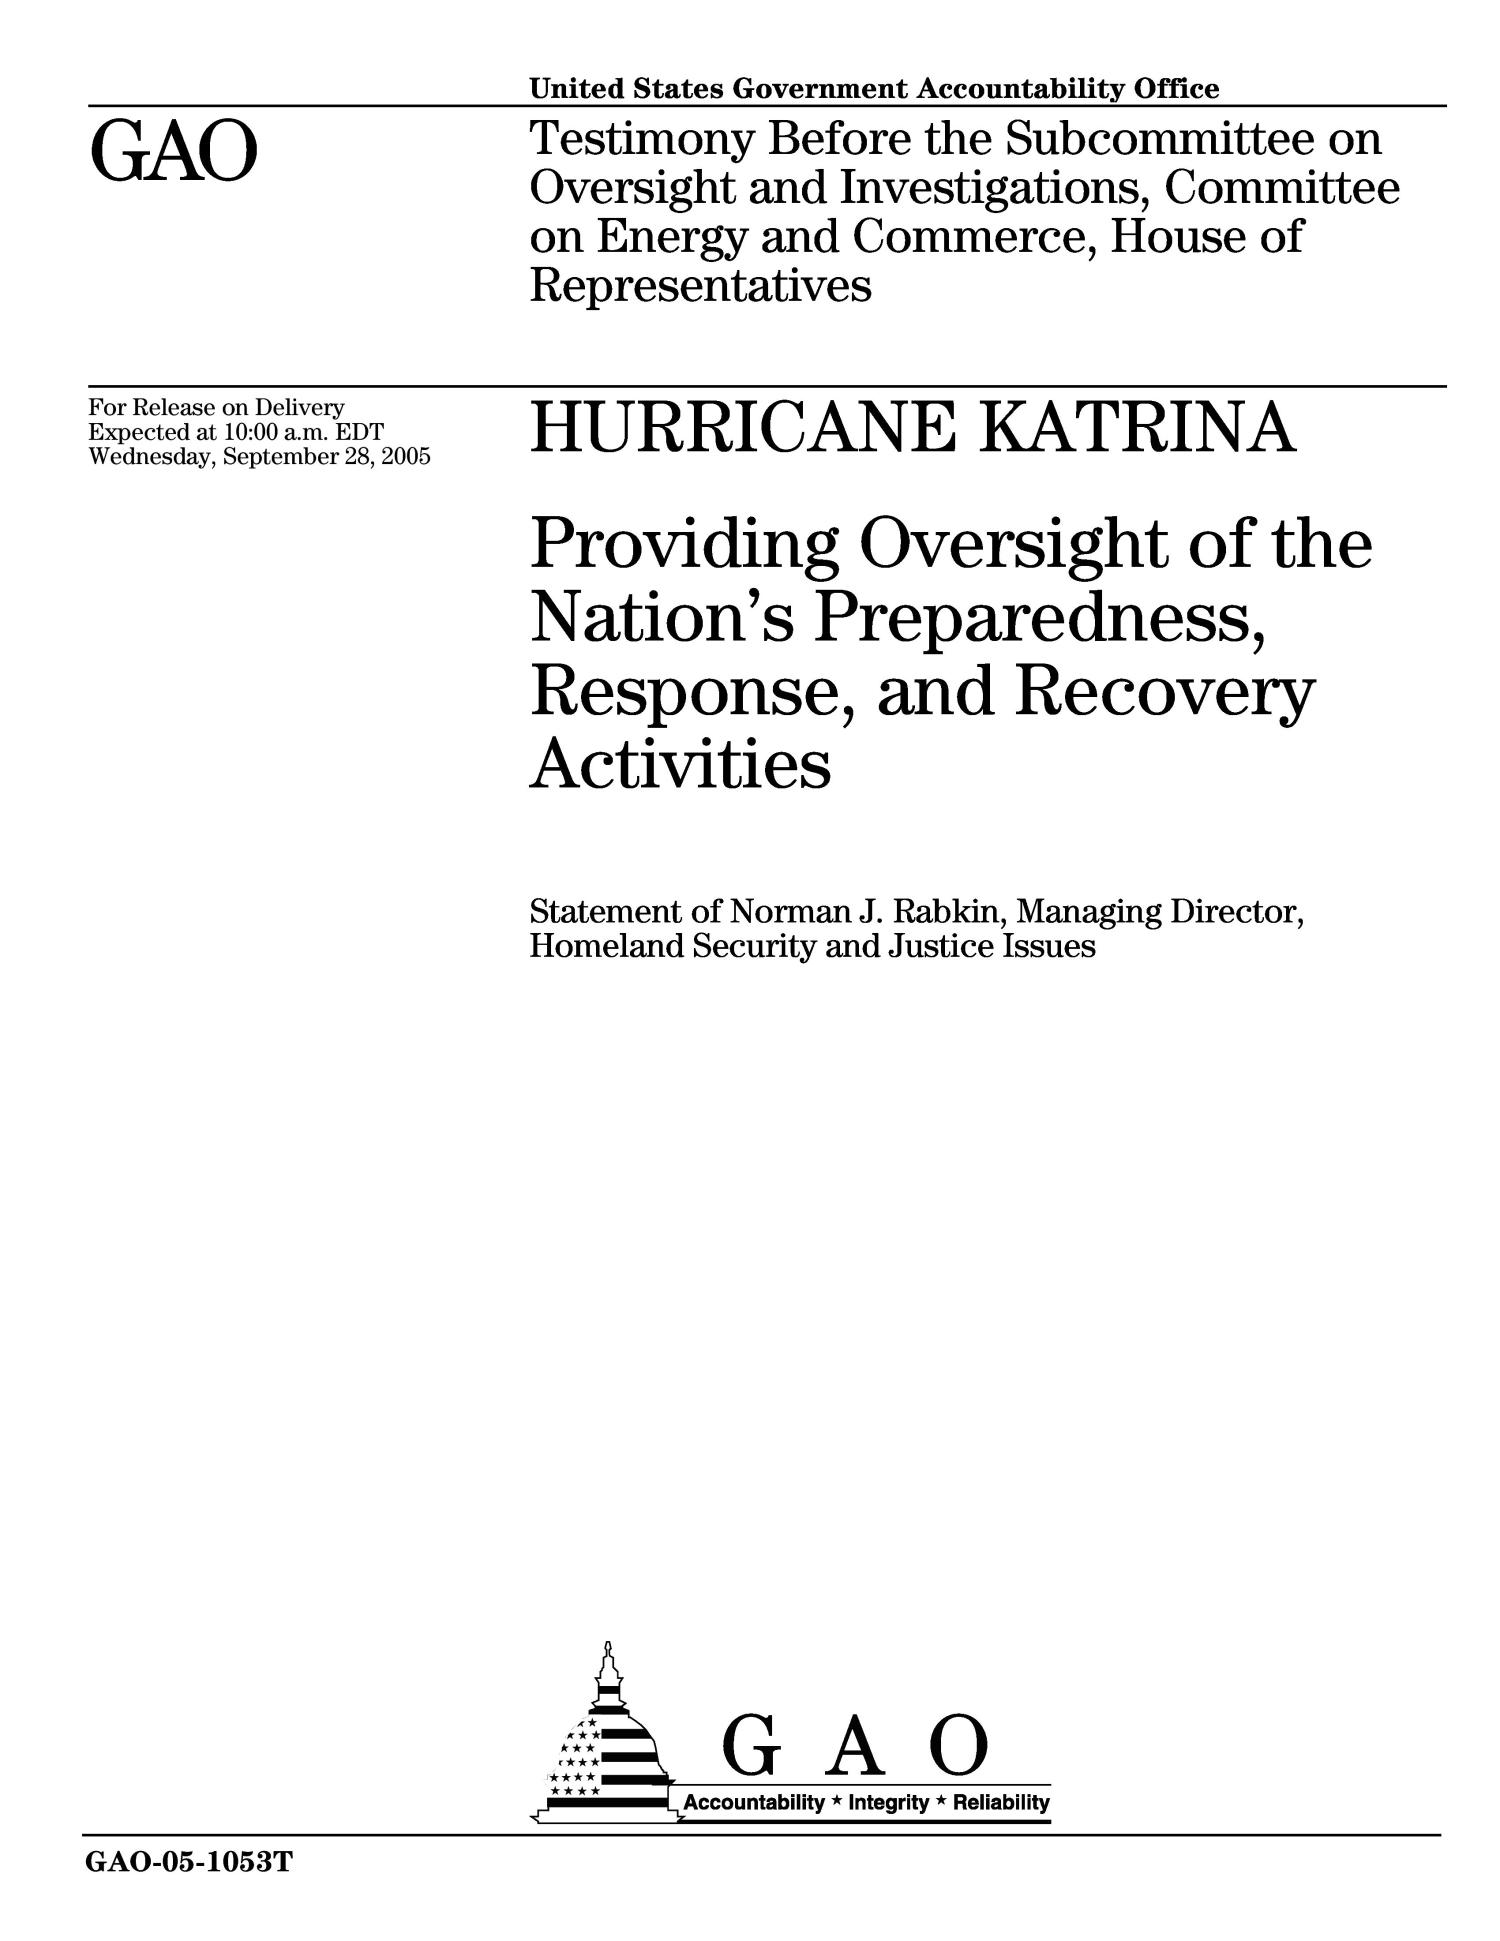 Hurricane Katrina: Providing Oversight of the Nation's Preparedness, Response, and Recovery Activities                                                                                                      [Sequence #]: 1 of 25